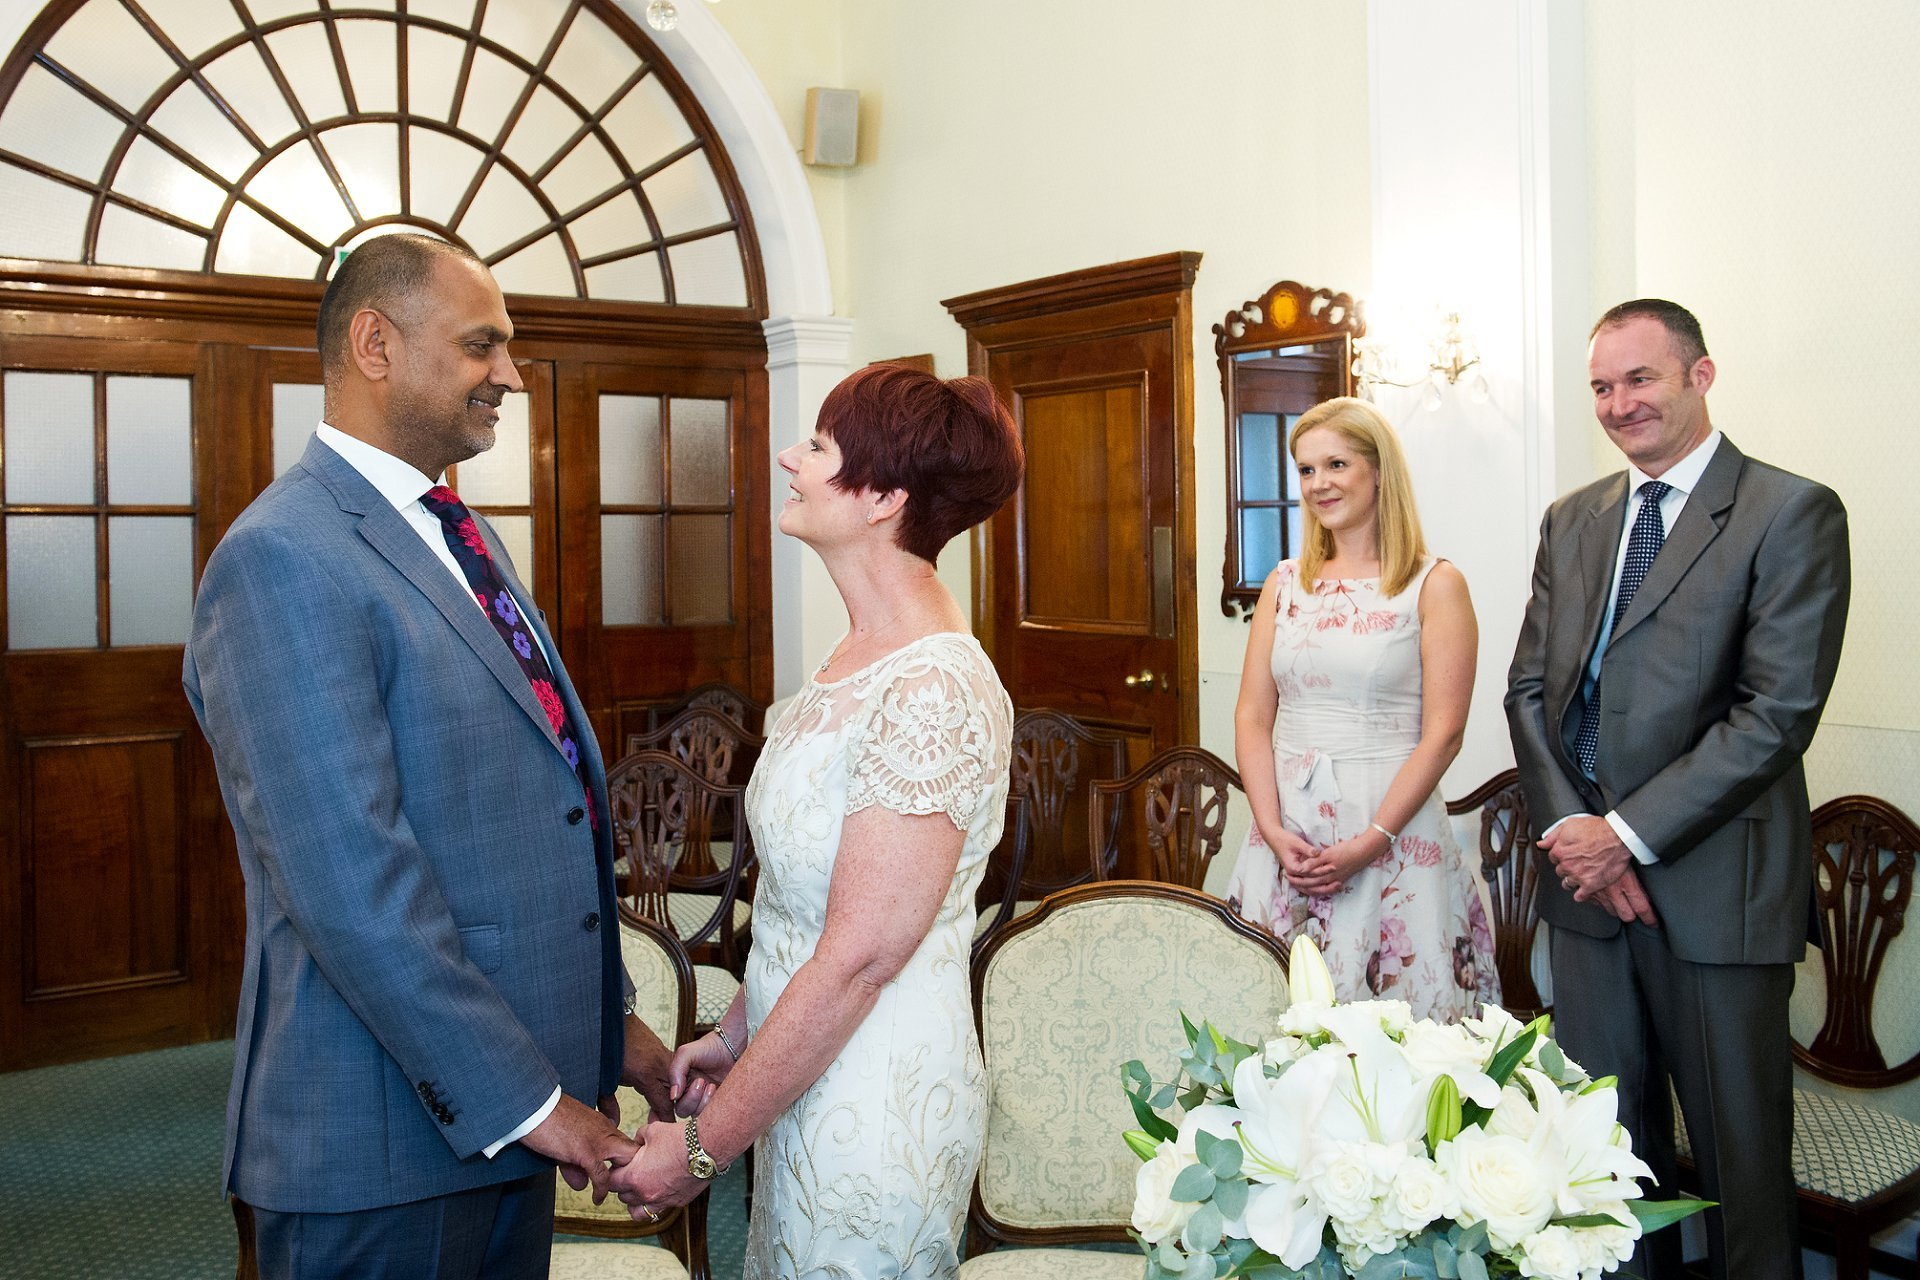 A Bride And Groom Exchanging Vows In Te Rossetti Room At Chelsea Registry Office